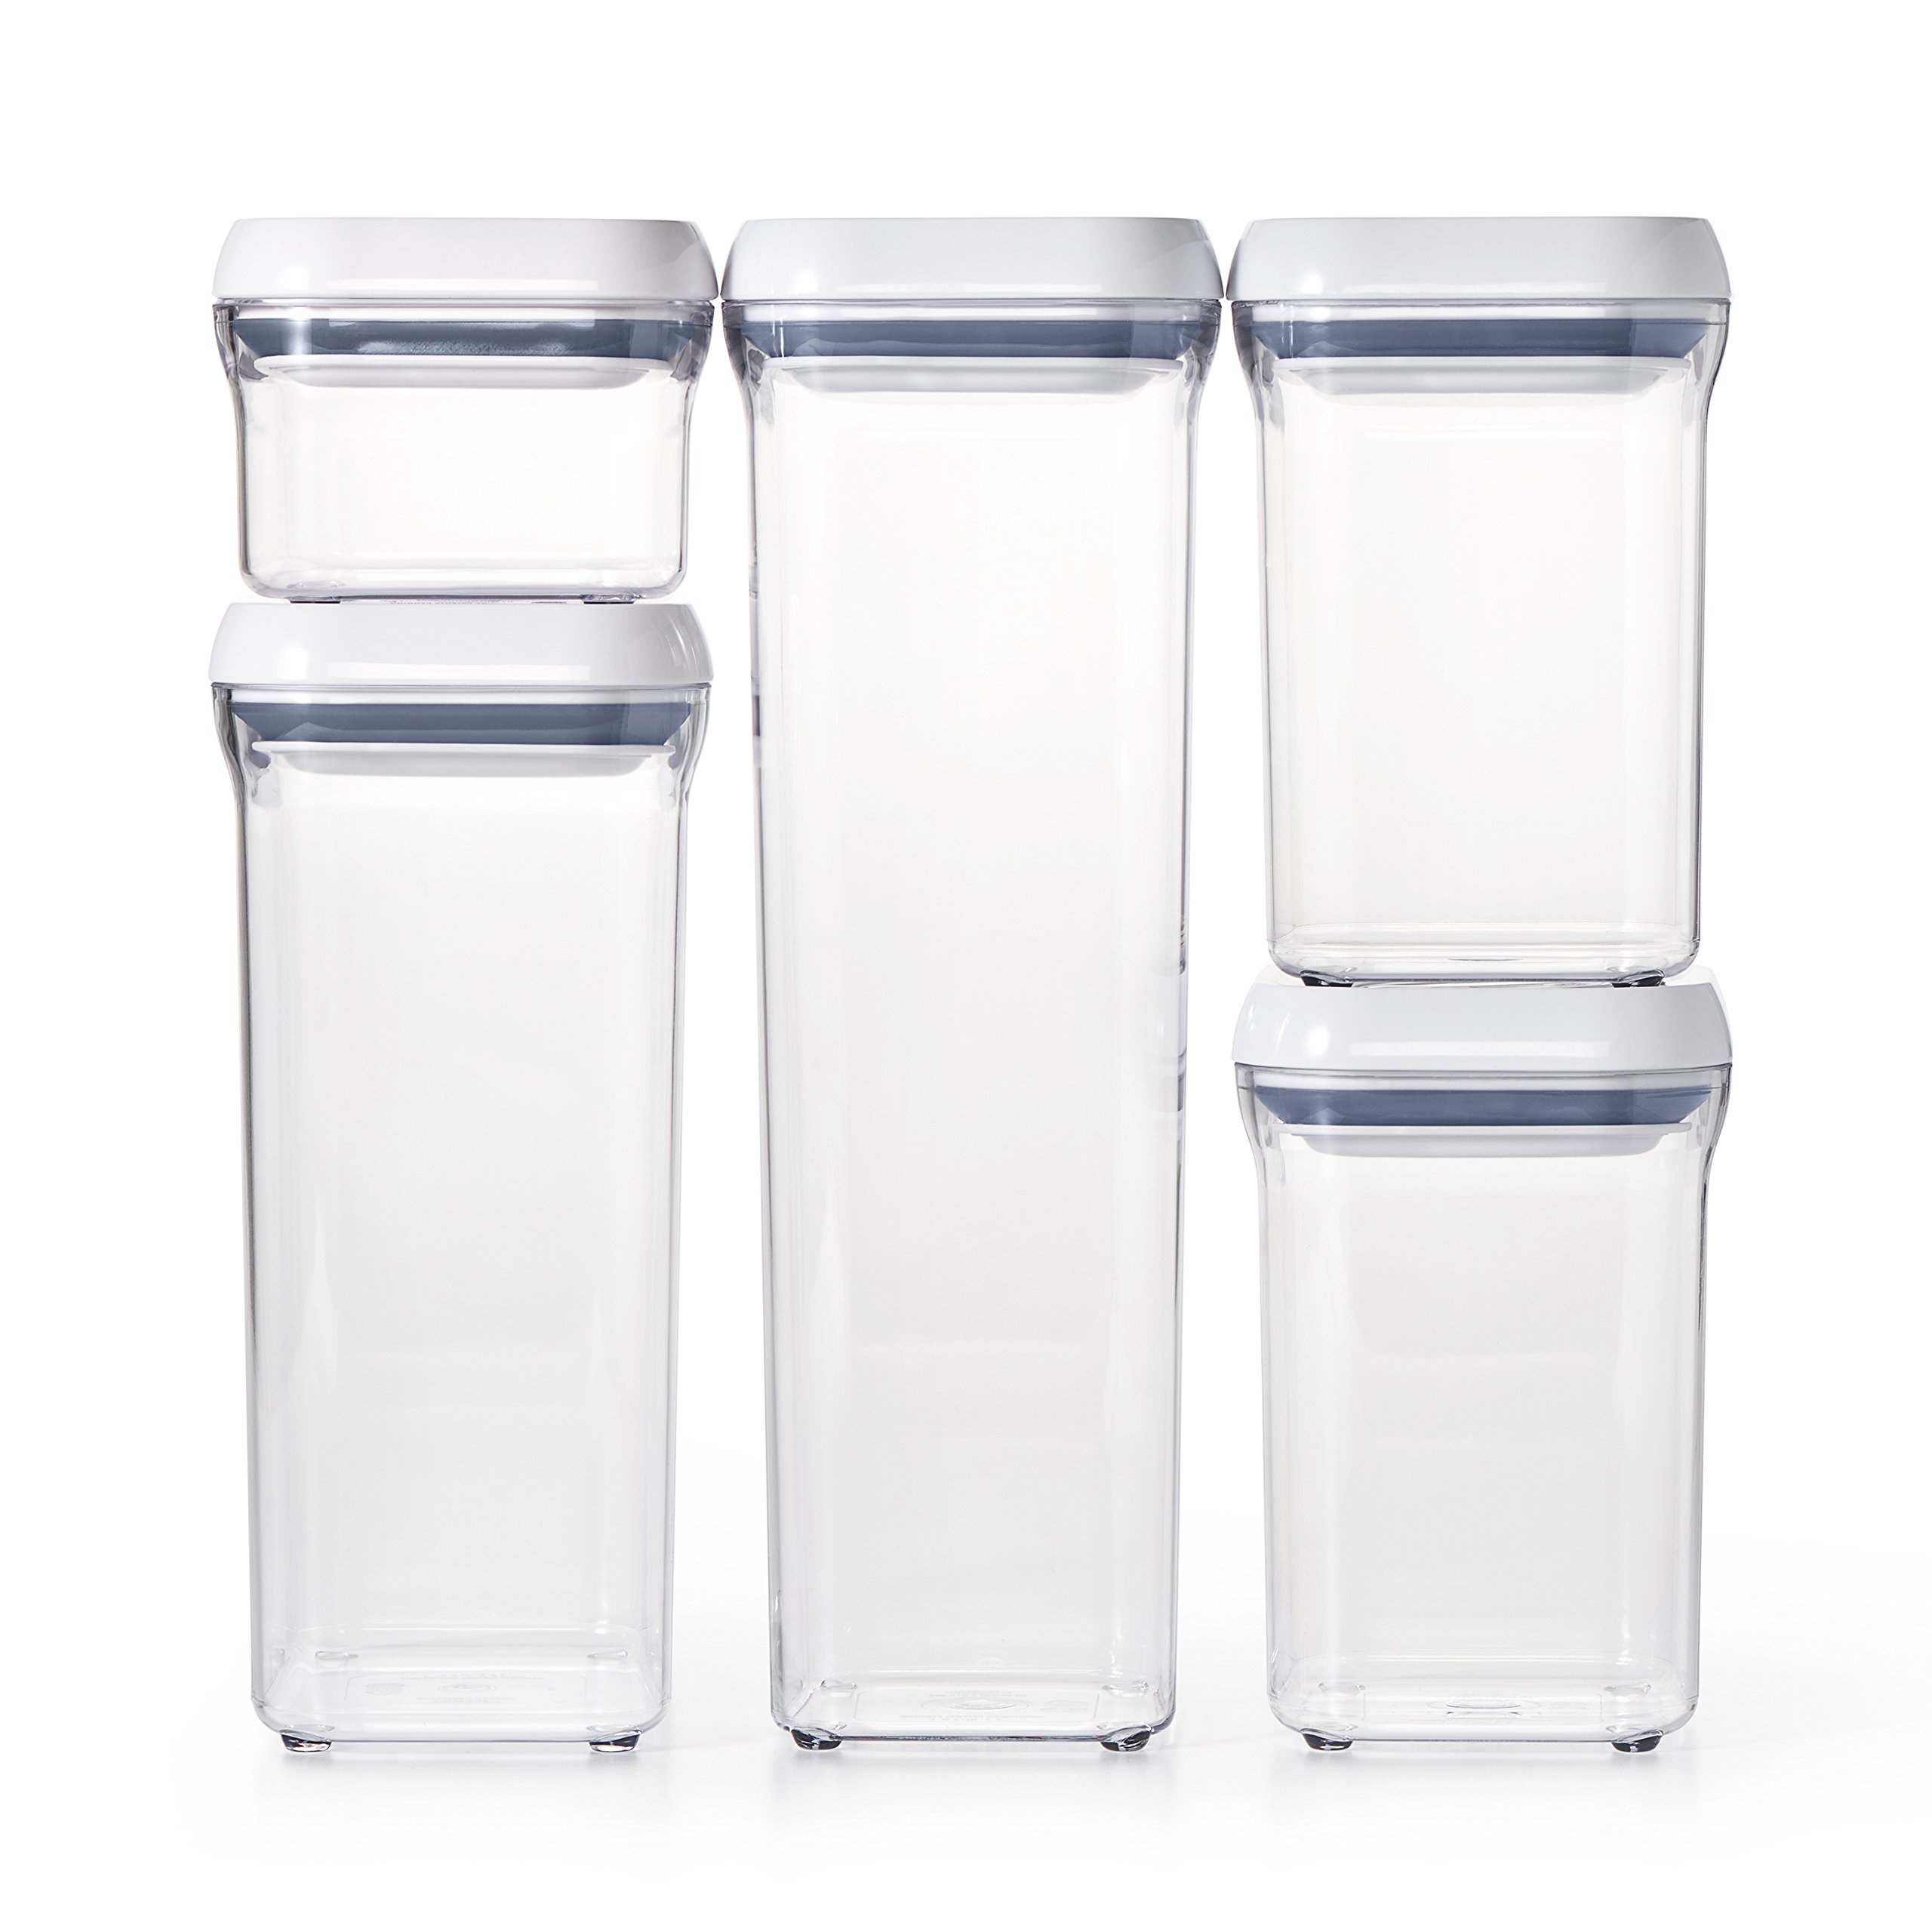 OXO Good Grips 5-Piece Airtight POP Container Set by OXO (Image #6)